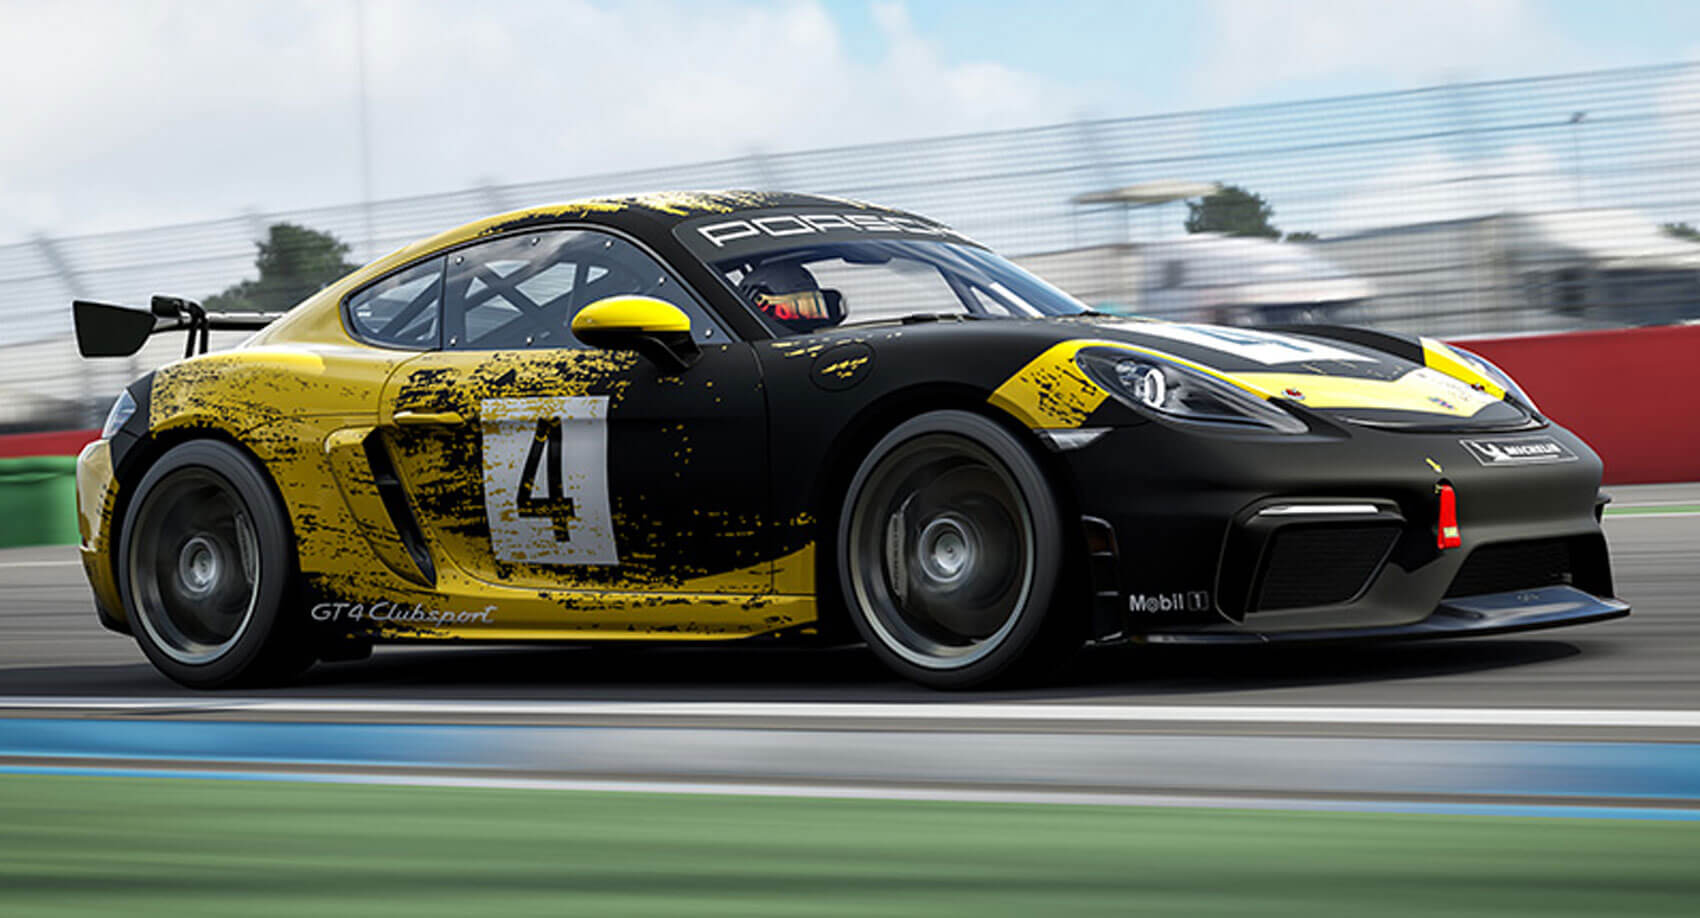 Race The New Porsche 718 Cayman Gt4 Clubsport In Forza Motorsport 7 Carscoops